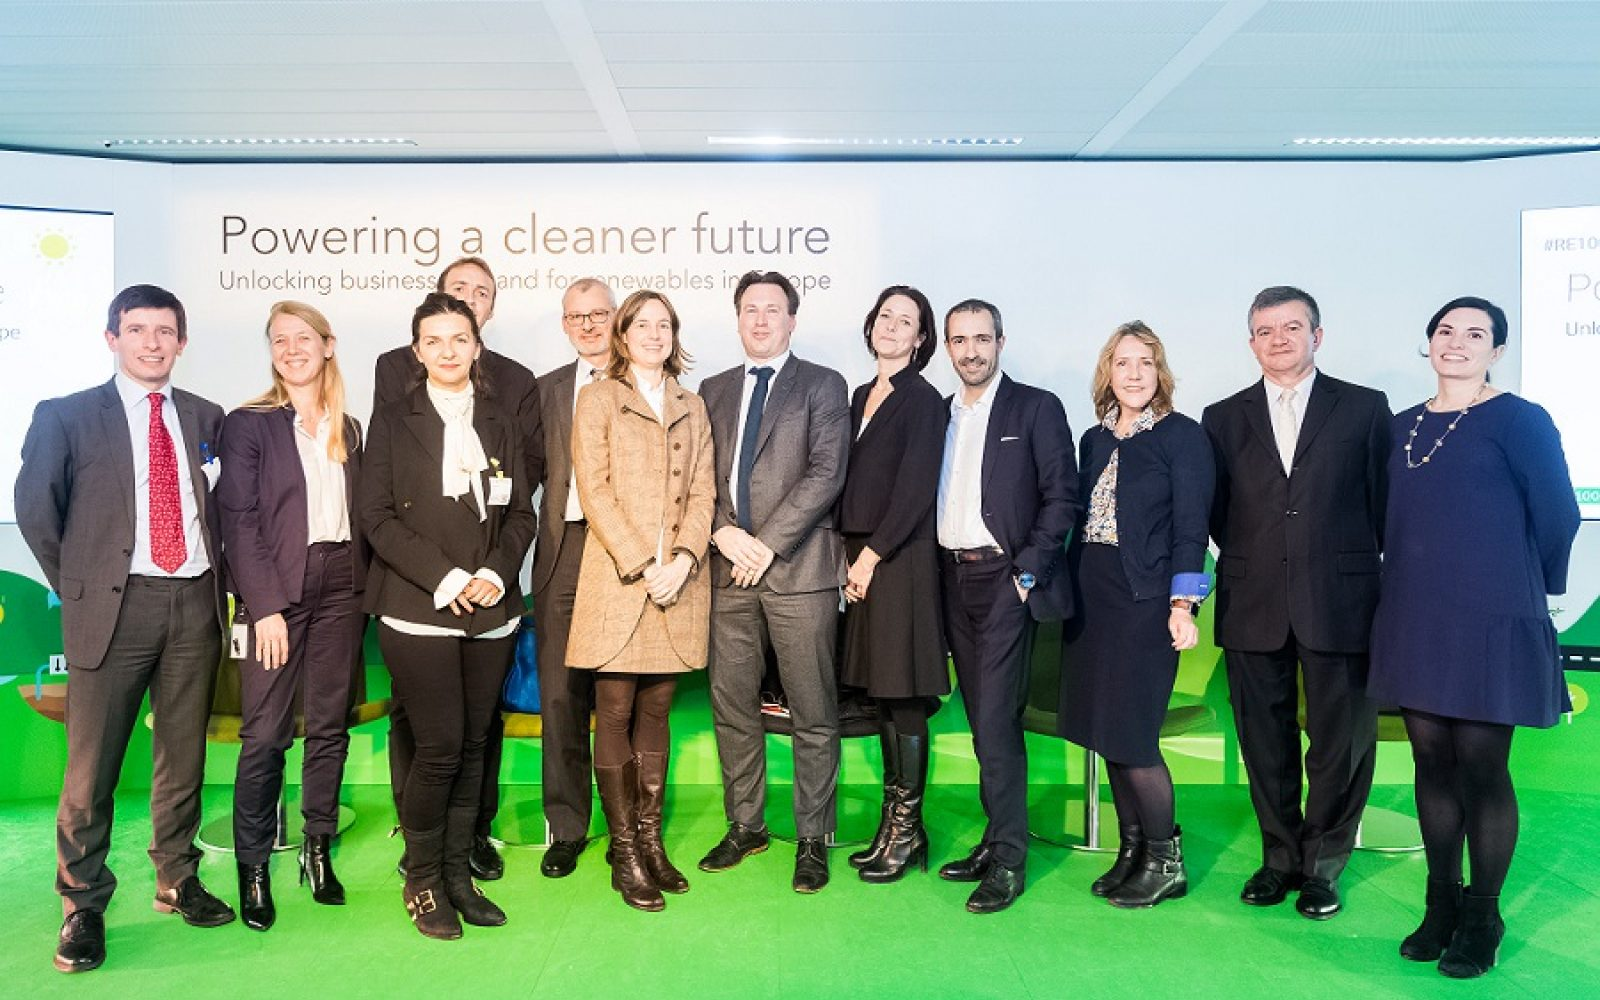 RE100 and Google make the case for a green business future in Brussels